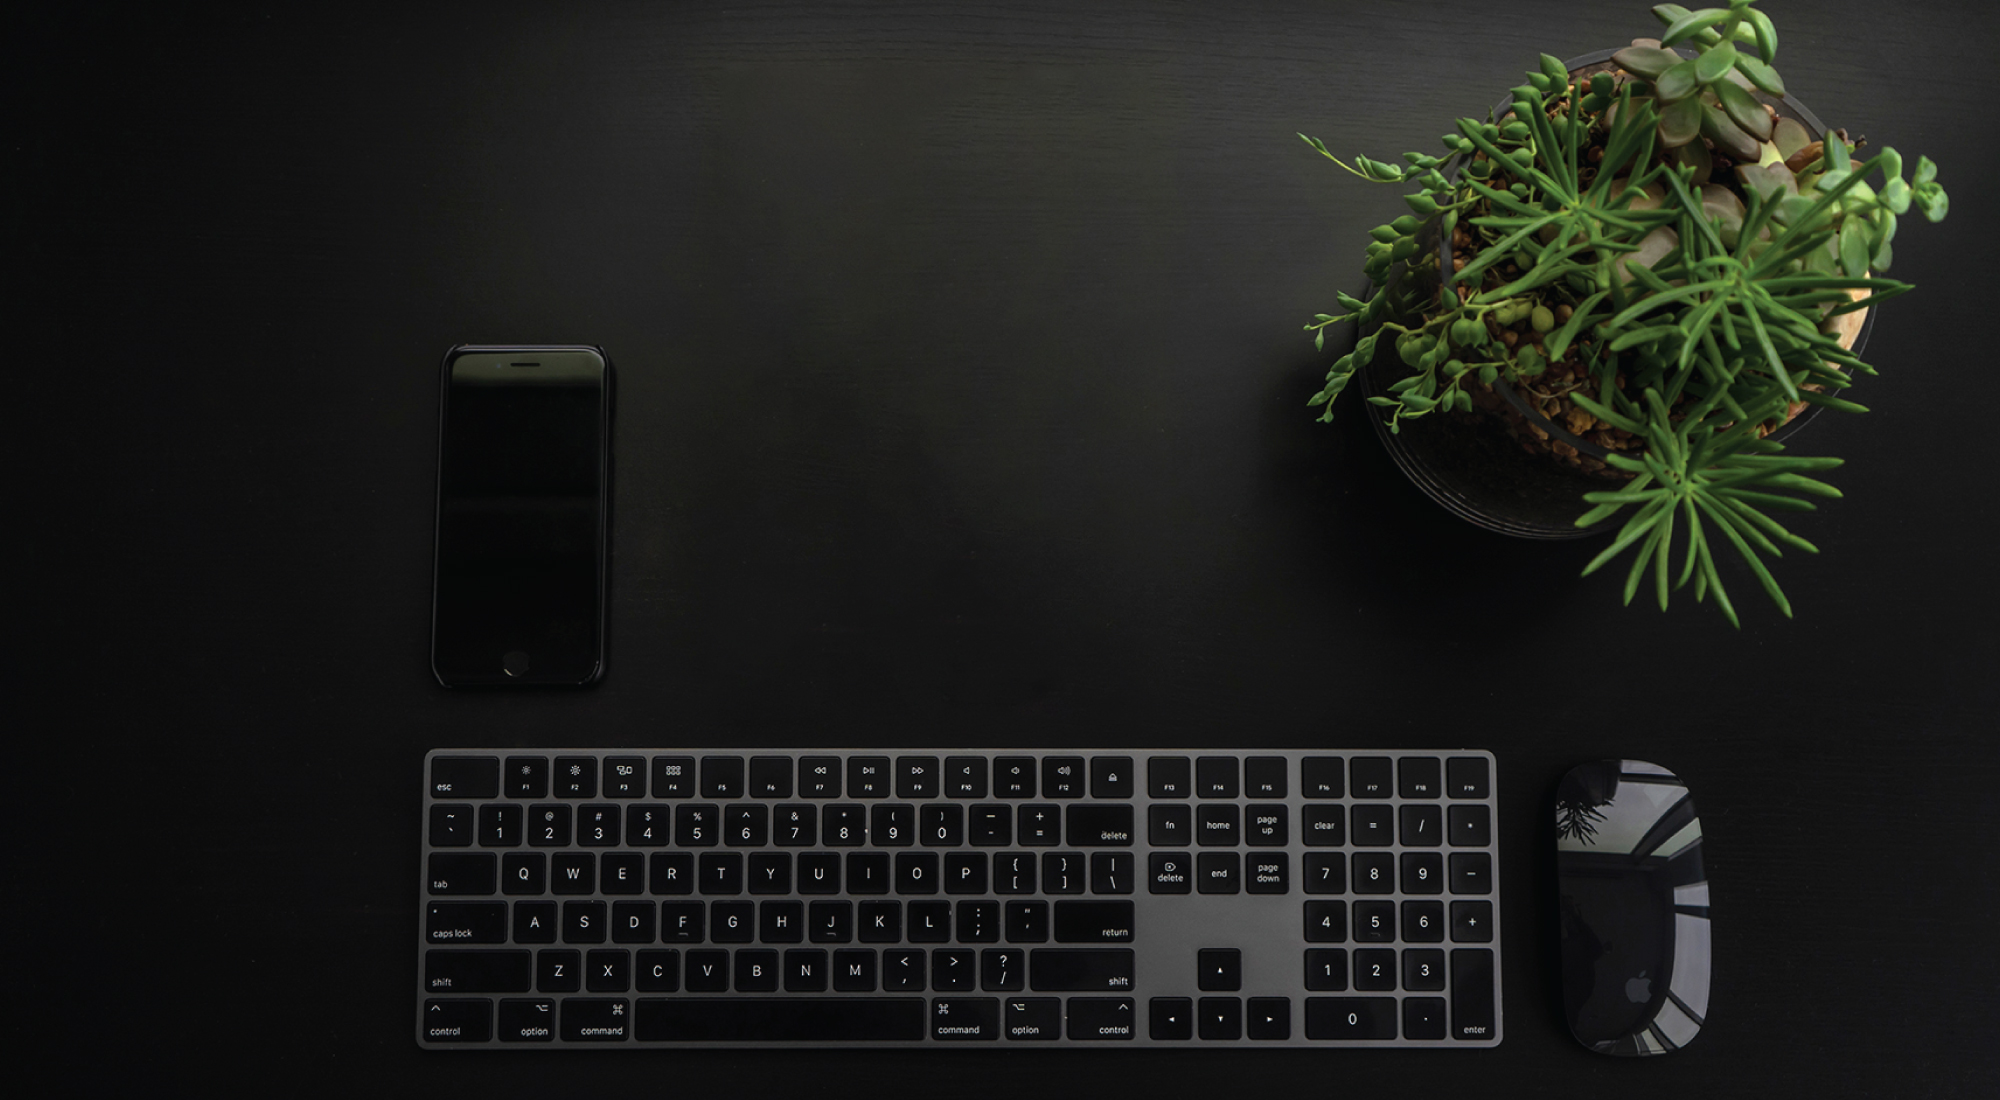 Clean, minimalist desk with just a phone, keyboard, mouse, and plant.